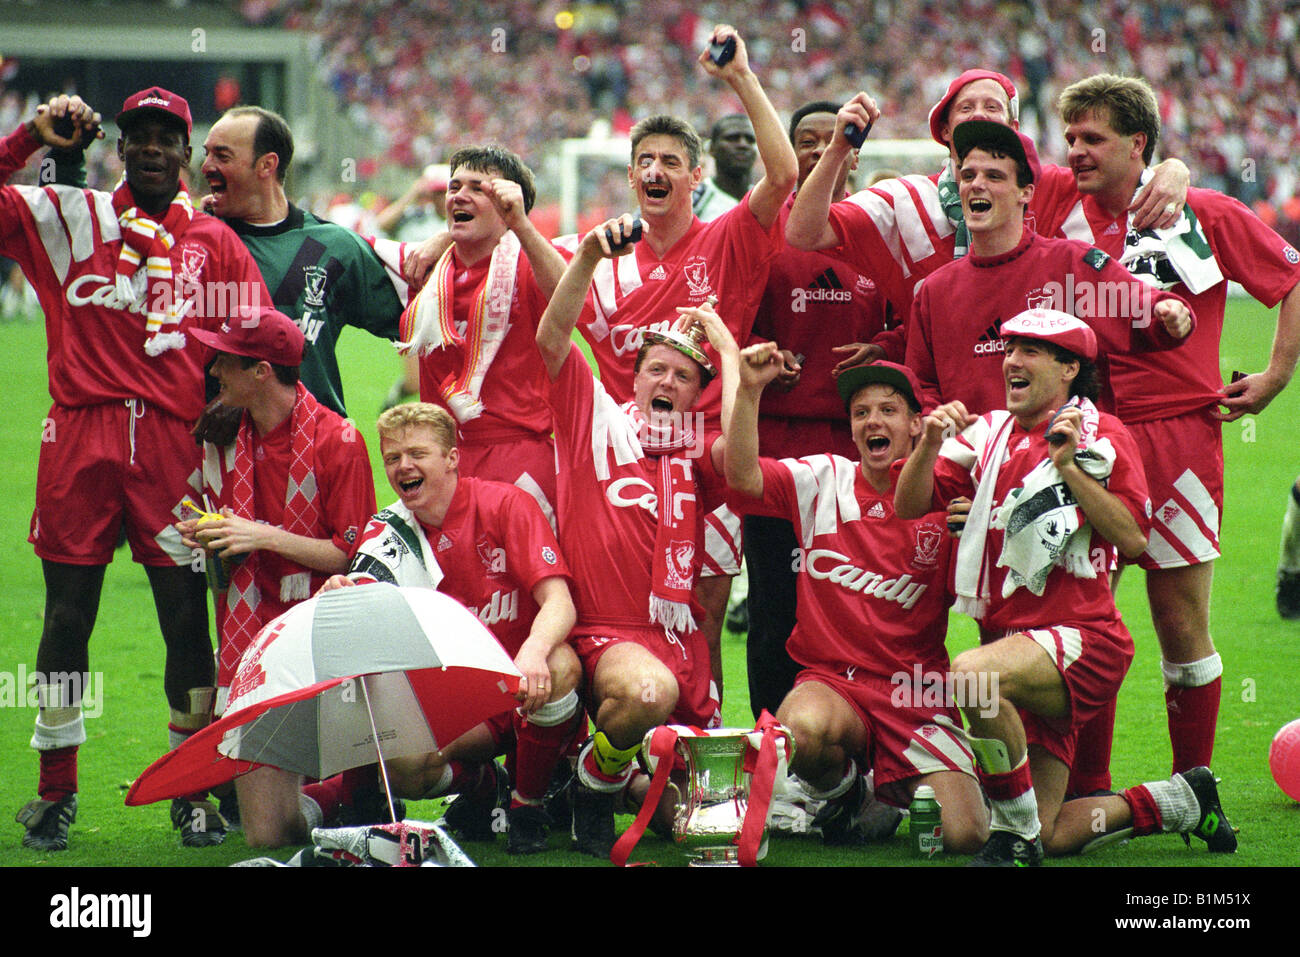 Liverpool celebrate after beating Sunderland in FA Cup Final 9 5 92 - Stock Image